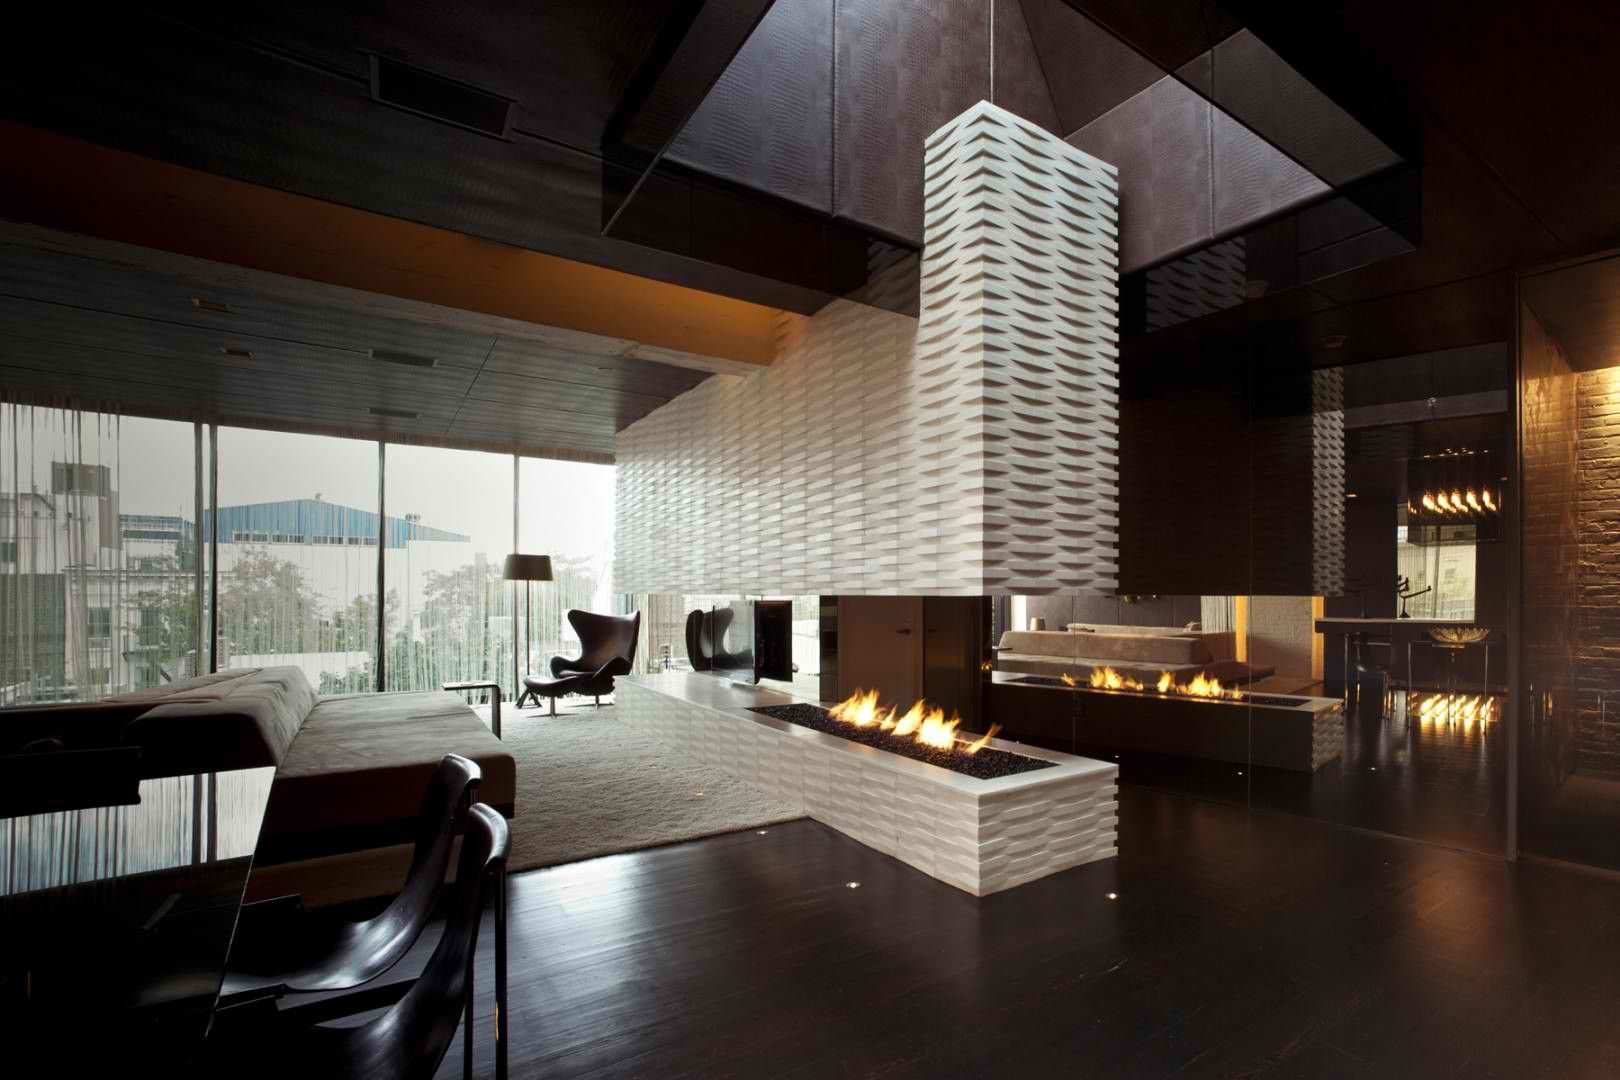 Charmant Luxury Modern Interior Design Skylab Architecture ~ Modern Luxury Houses,  Architecturemodern Luxury Miami, Scandinavian